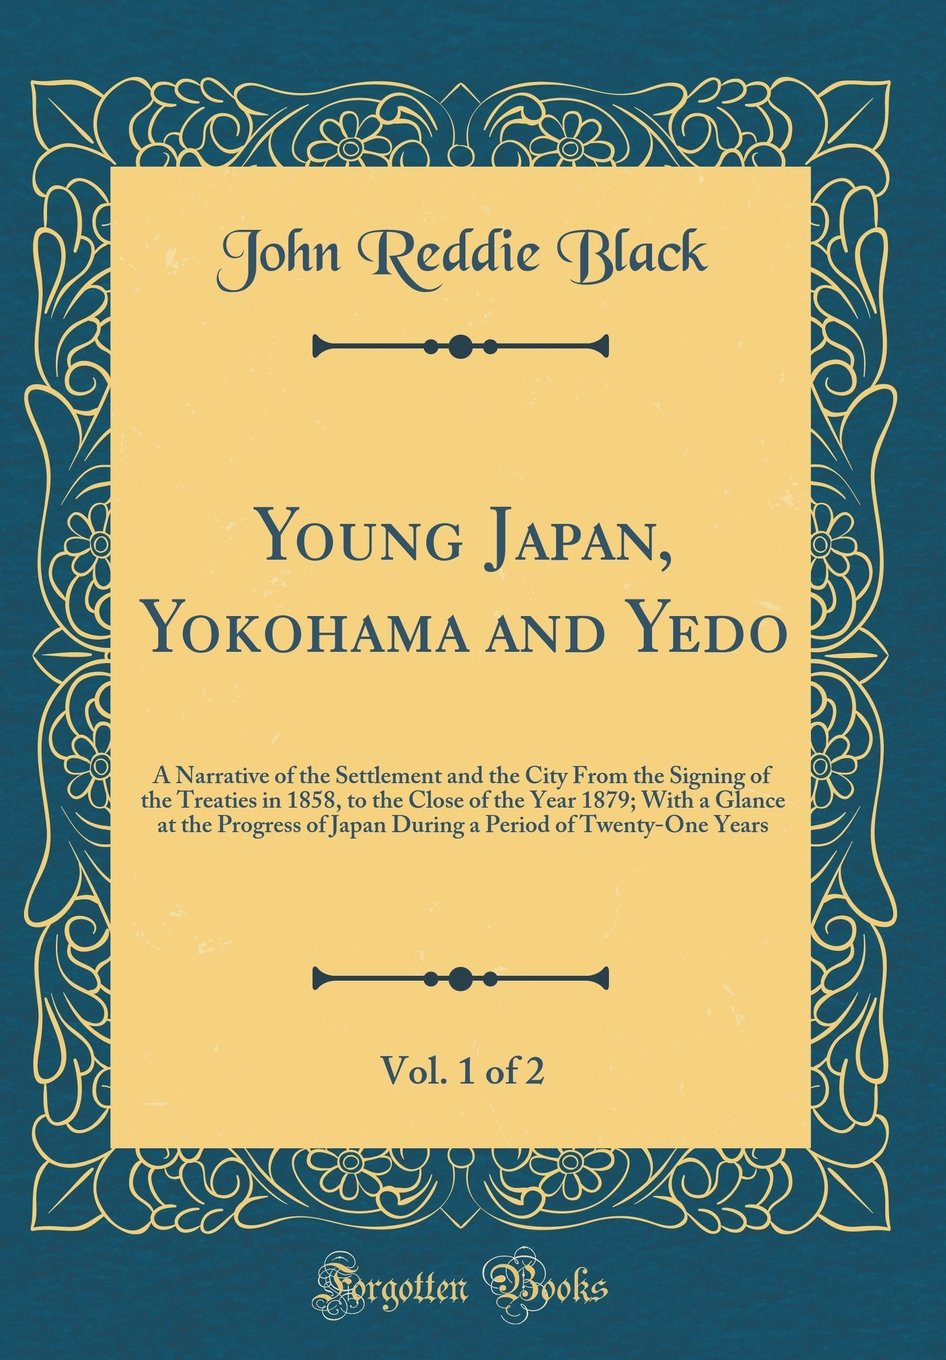 Young Japan, Yokohama and Yedo, Vol. 1 of 2: A Narrative of the Settlement and the City From the Signing of the Treaties in 1858, to the Close of the ... Period of Twenty-One Years (Classic Reprint) pdf epub